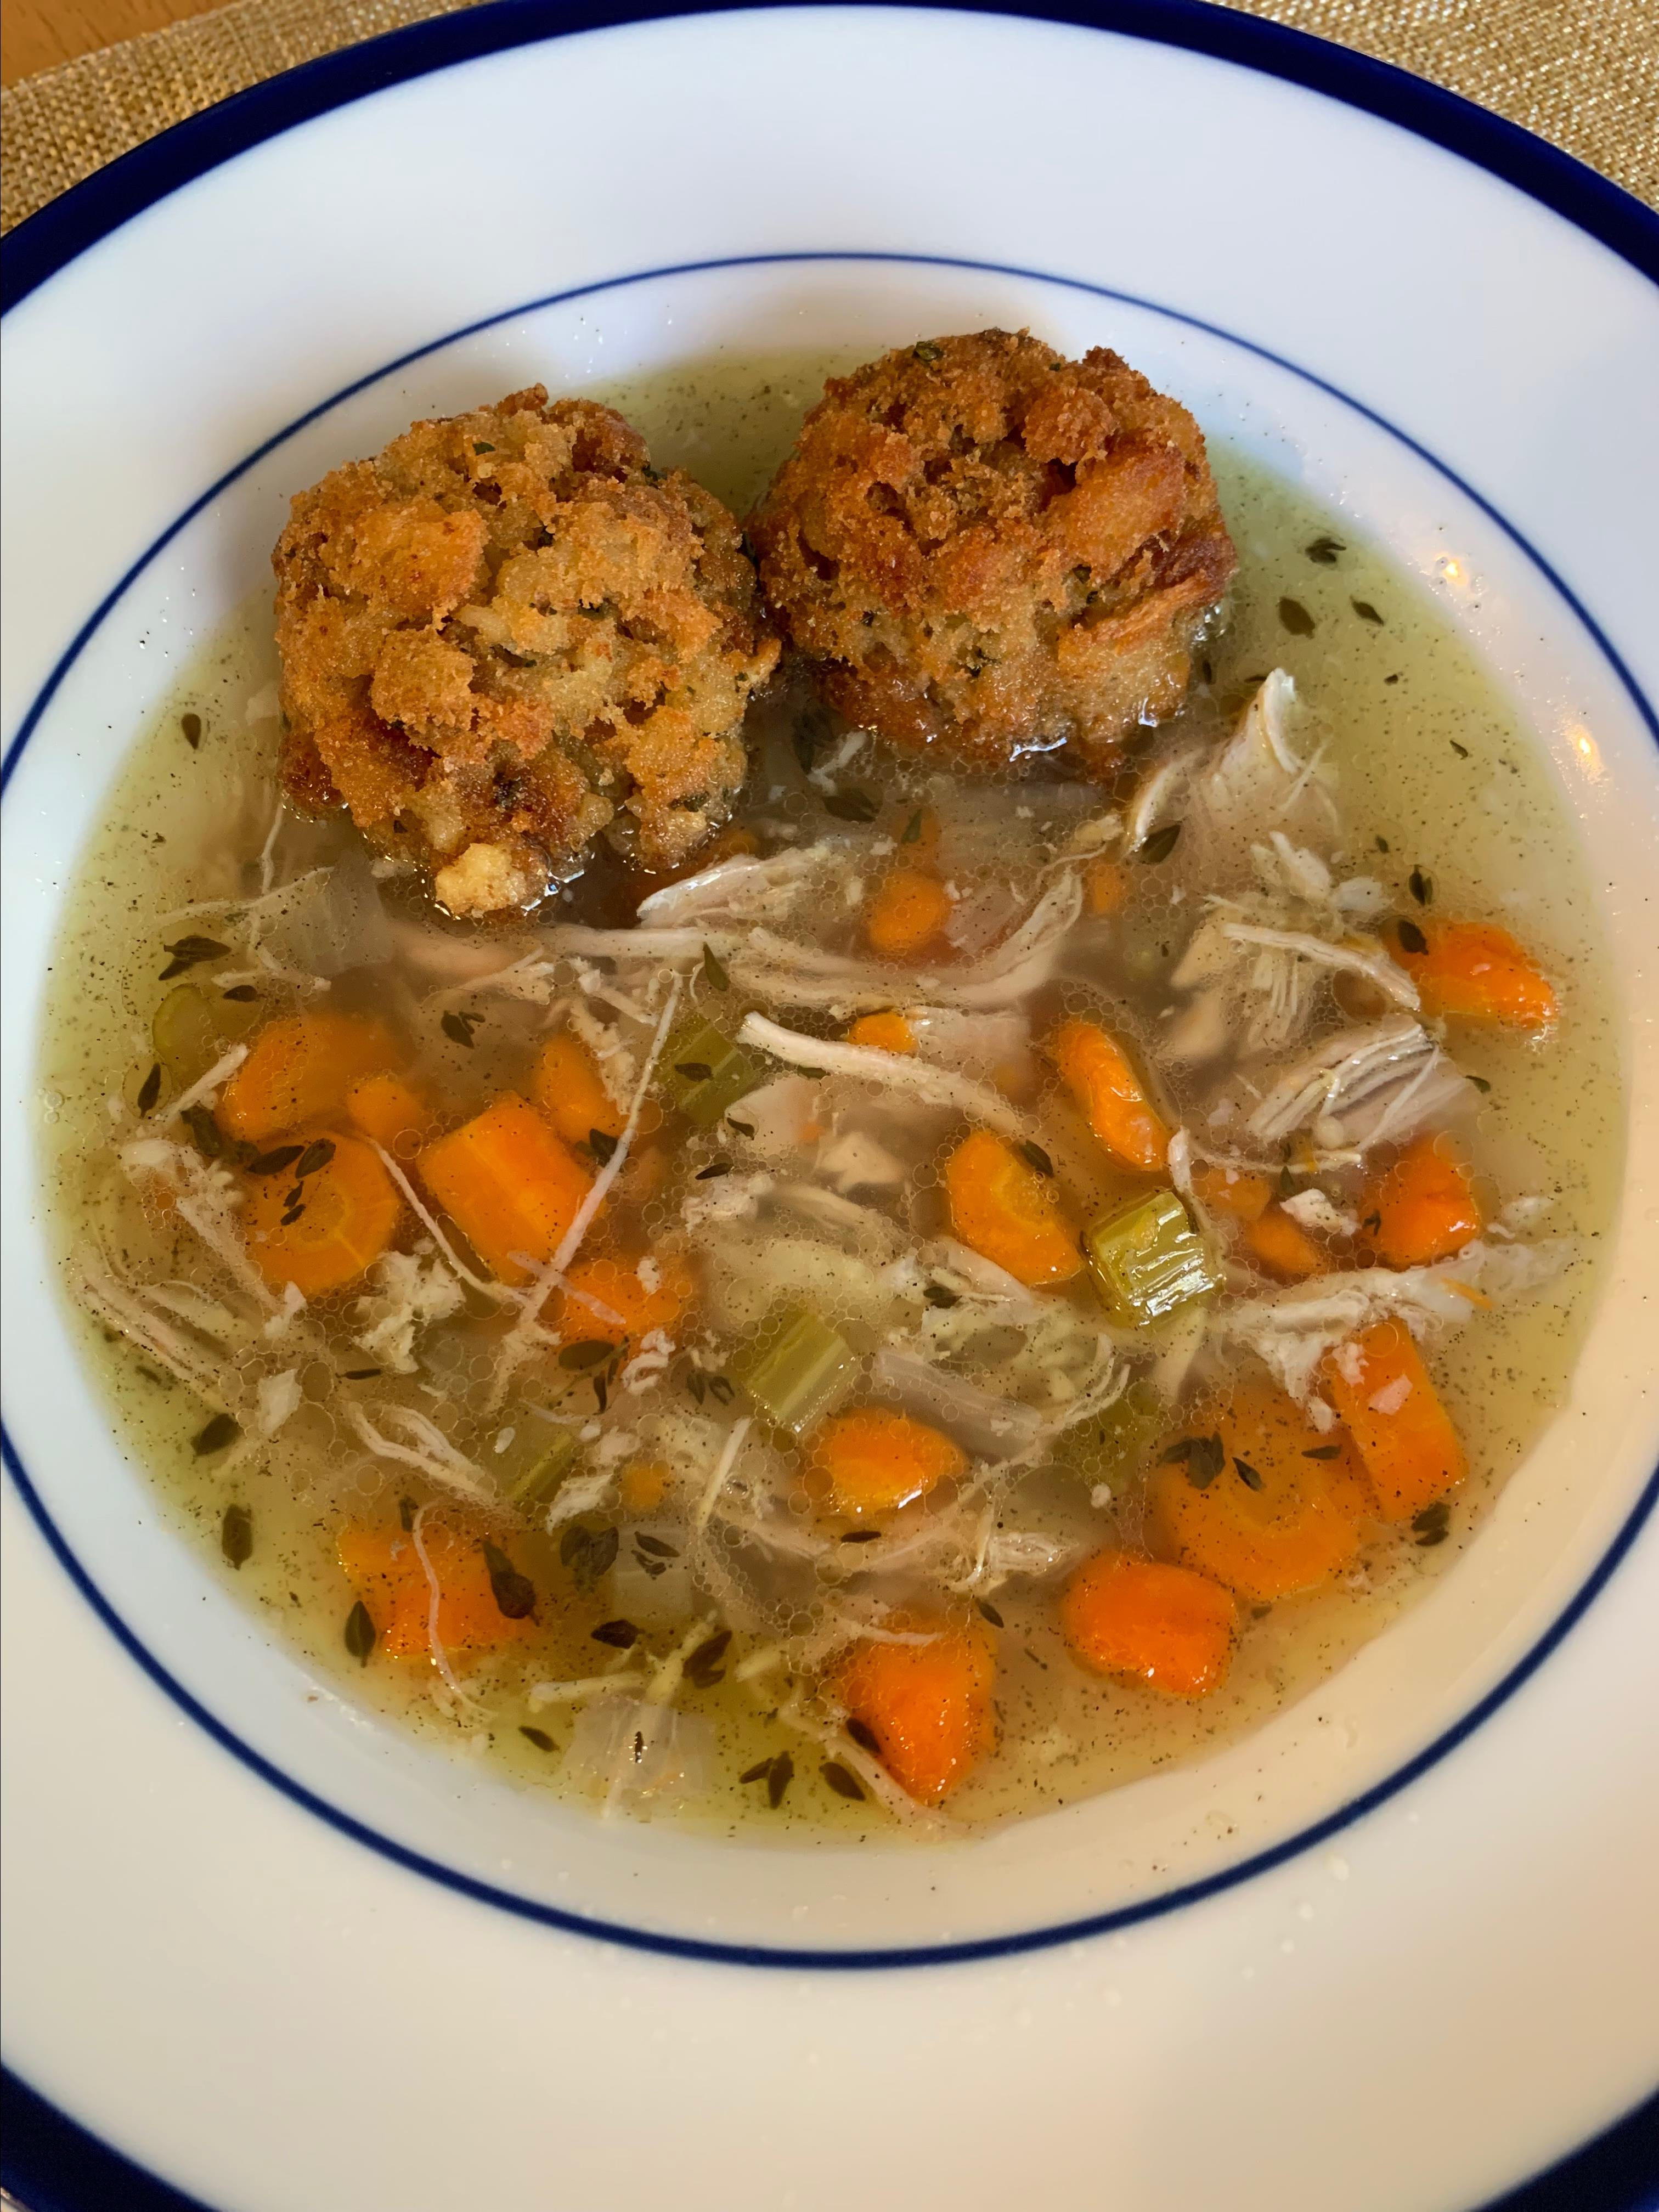 Delicious Turkey Soup with Deep-Fried Stuffing Balls